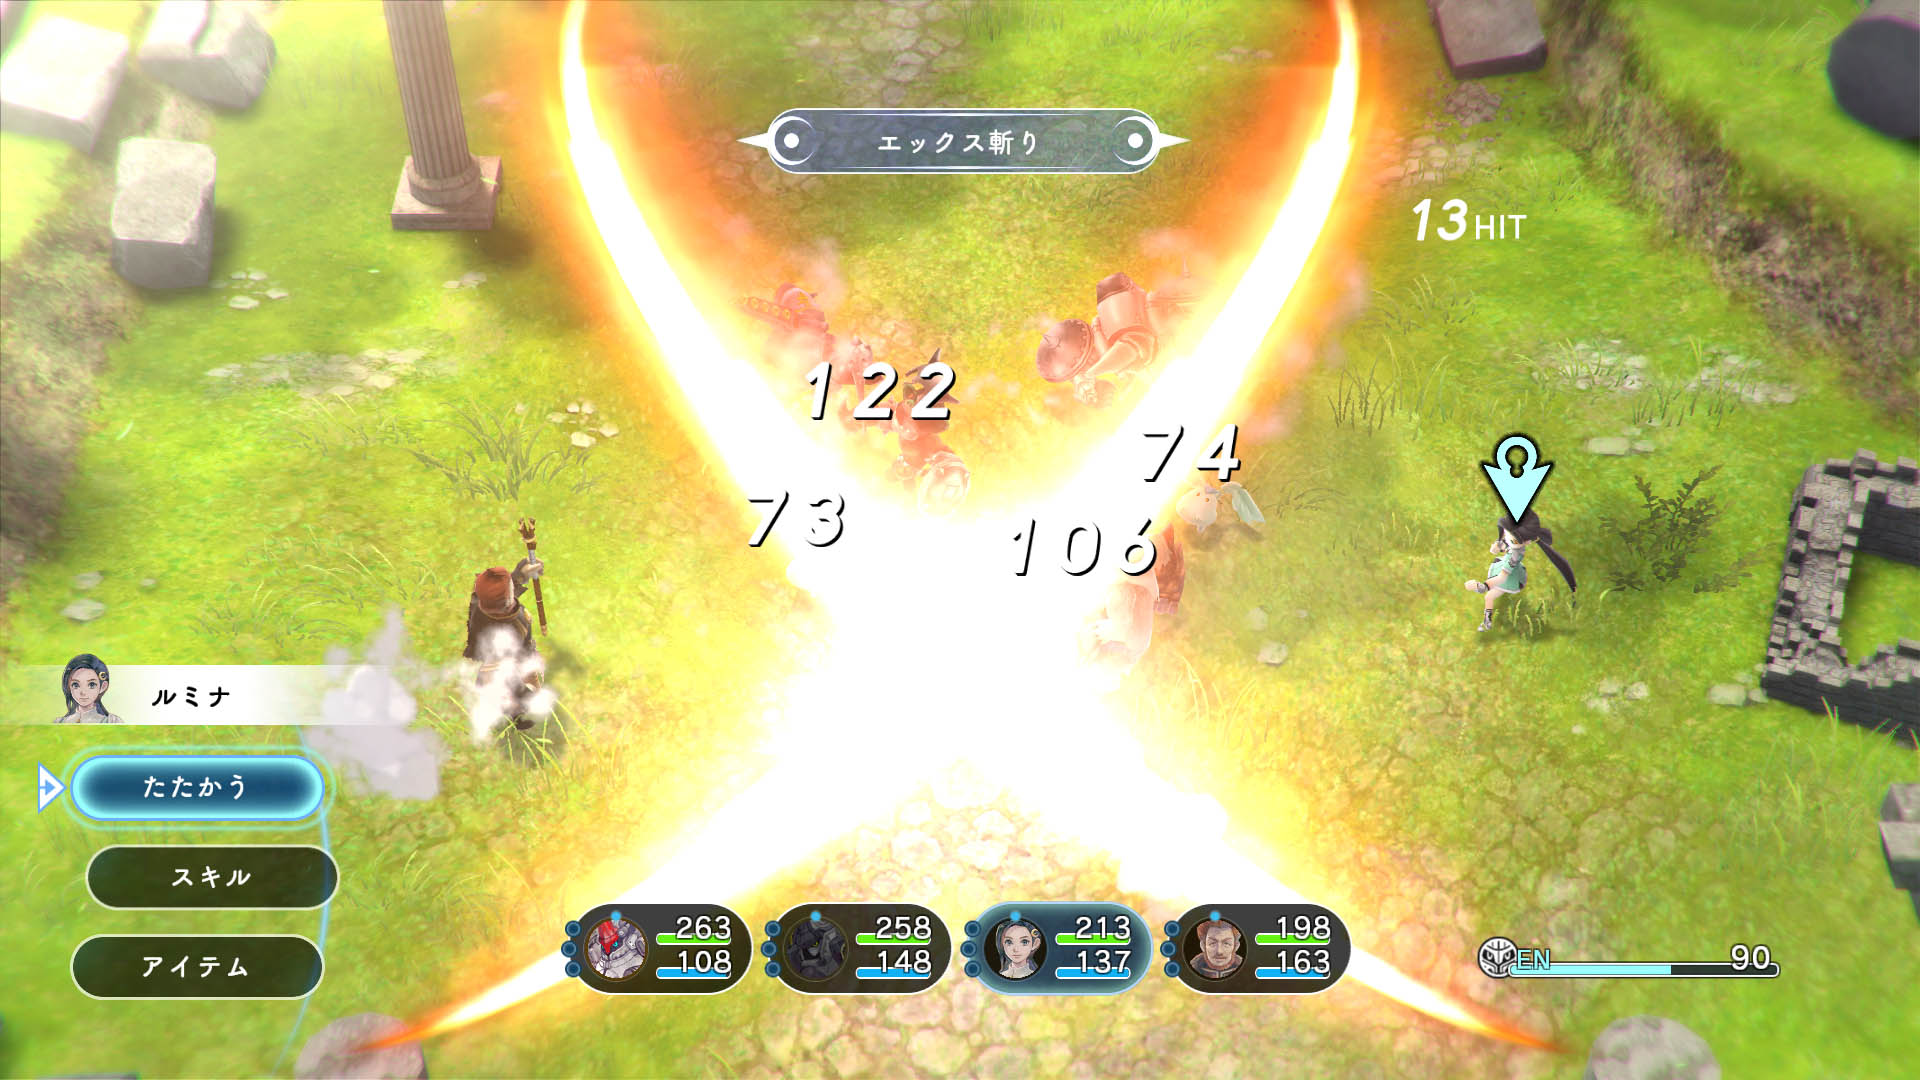 Image result for Lost sphear 1920x1080